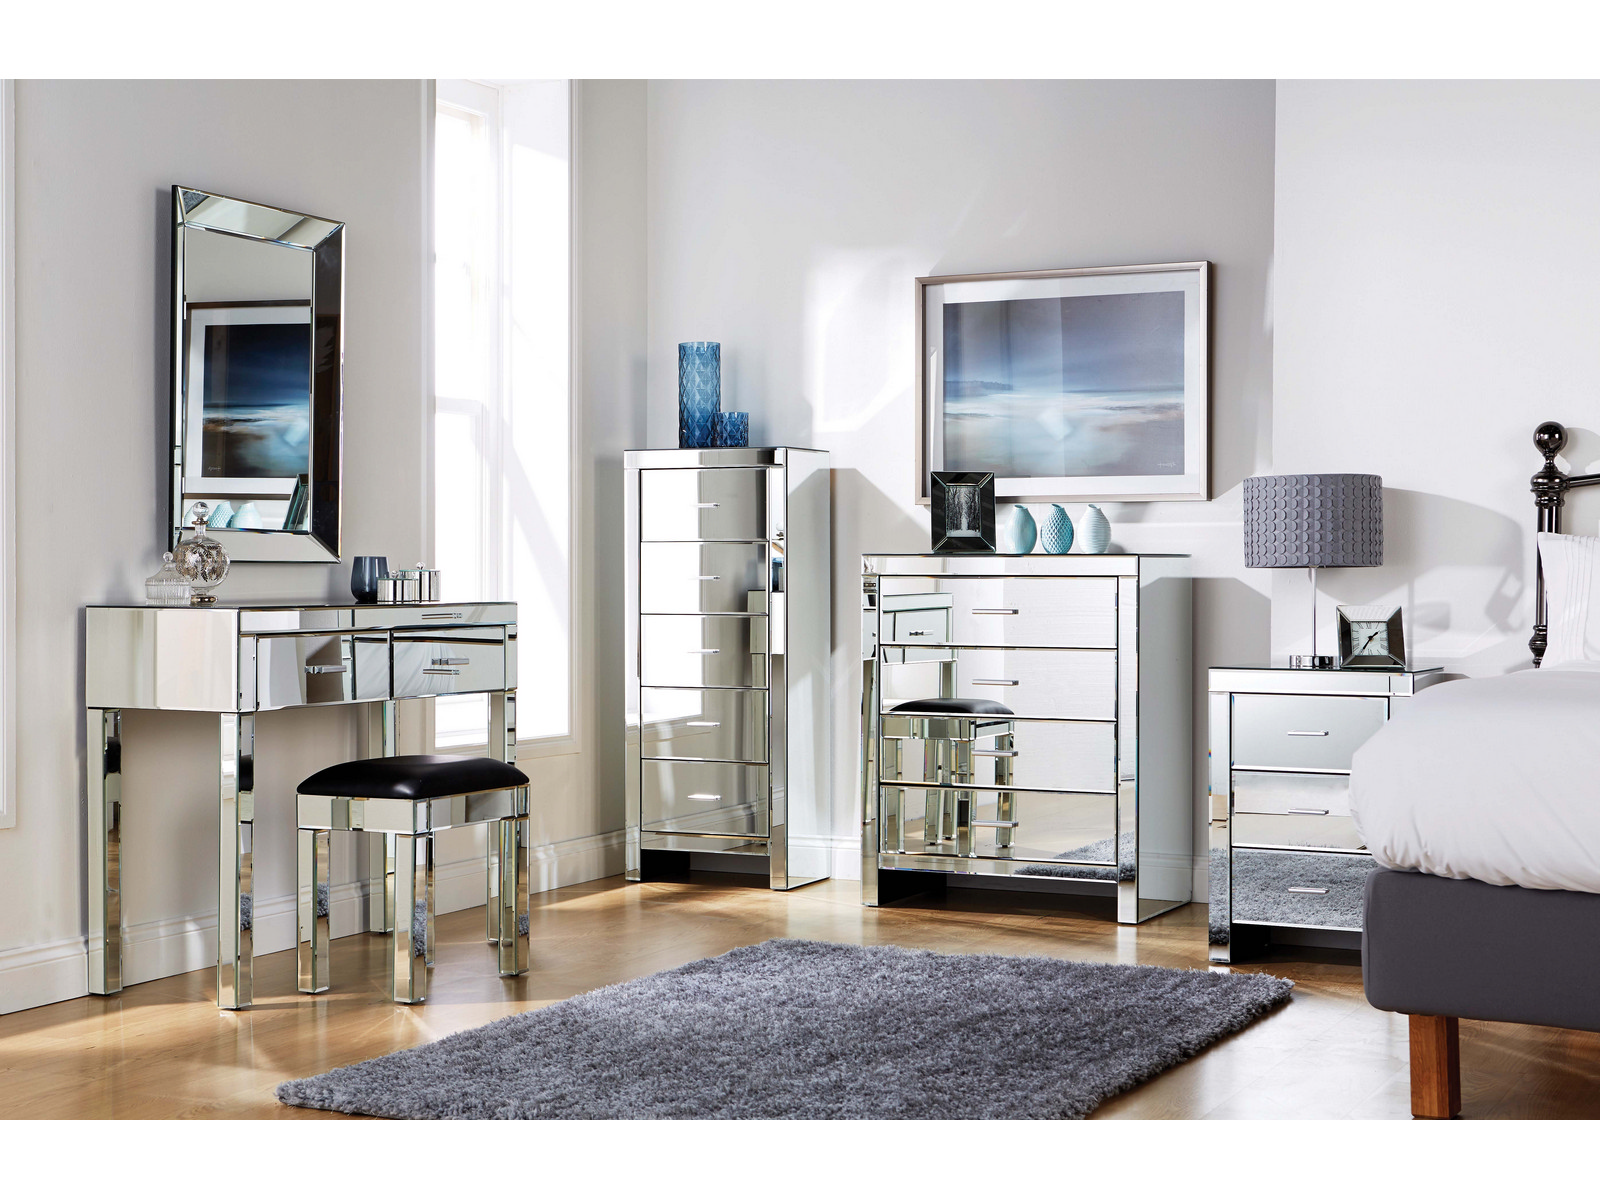 Details about mirrored furniture bedroom collection glass chest drawers dressing table range